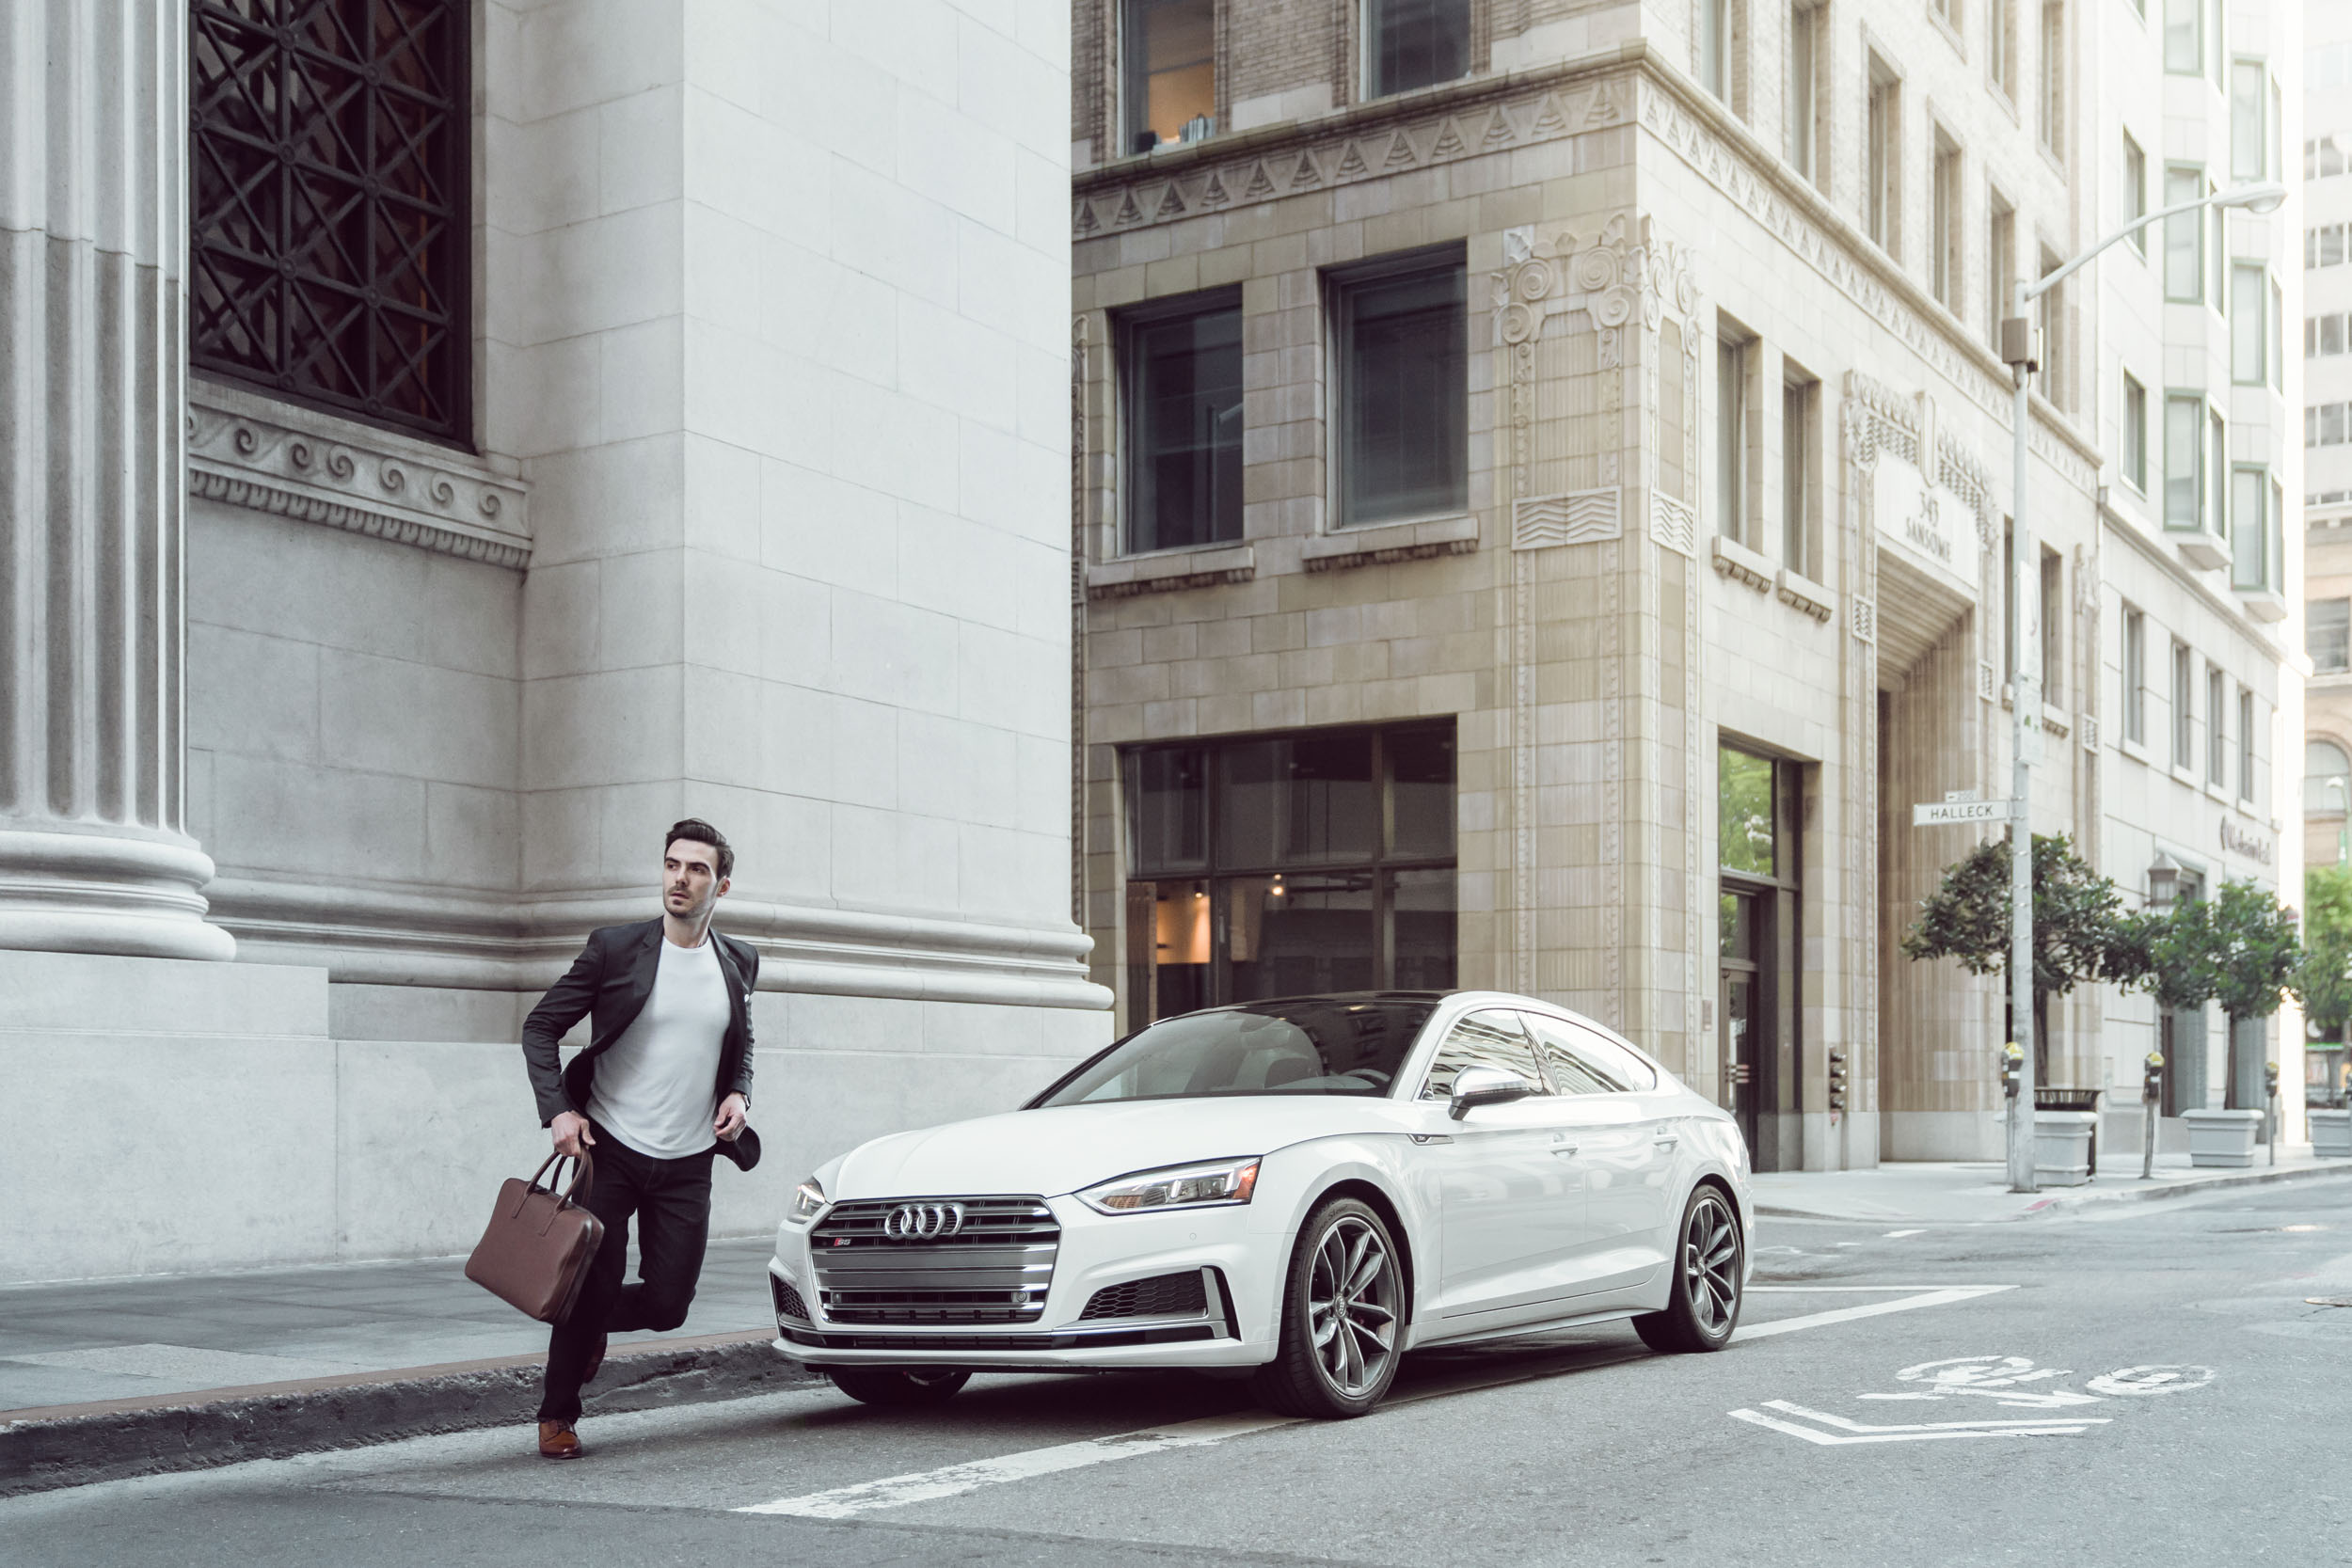 A male in business attire runs across street near his white Audi S5 Sportsback